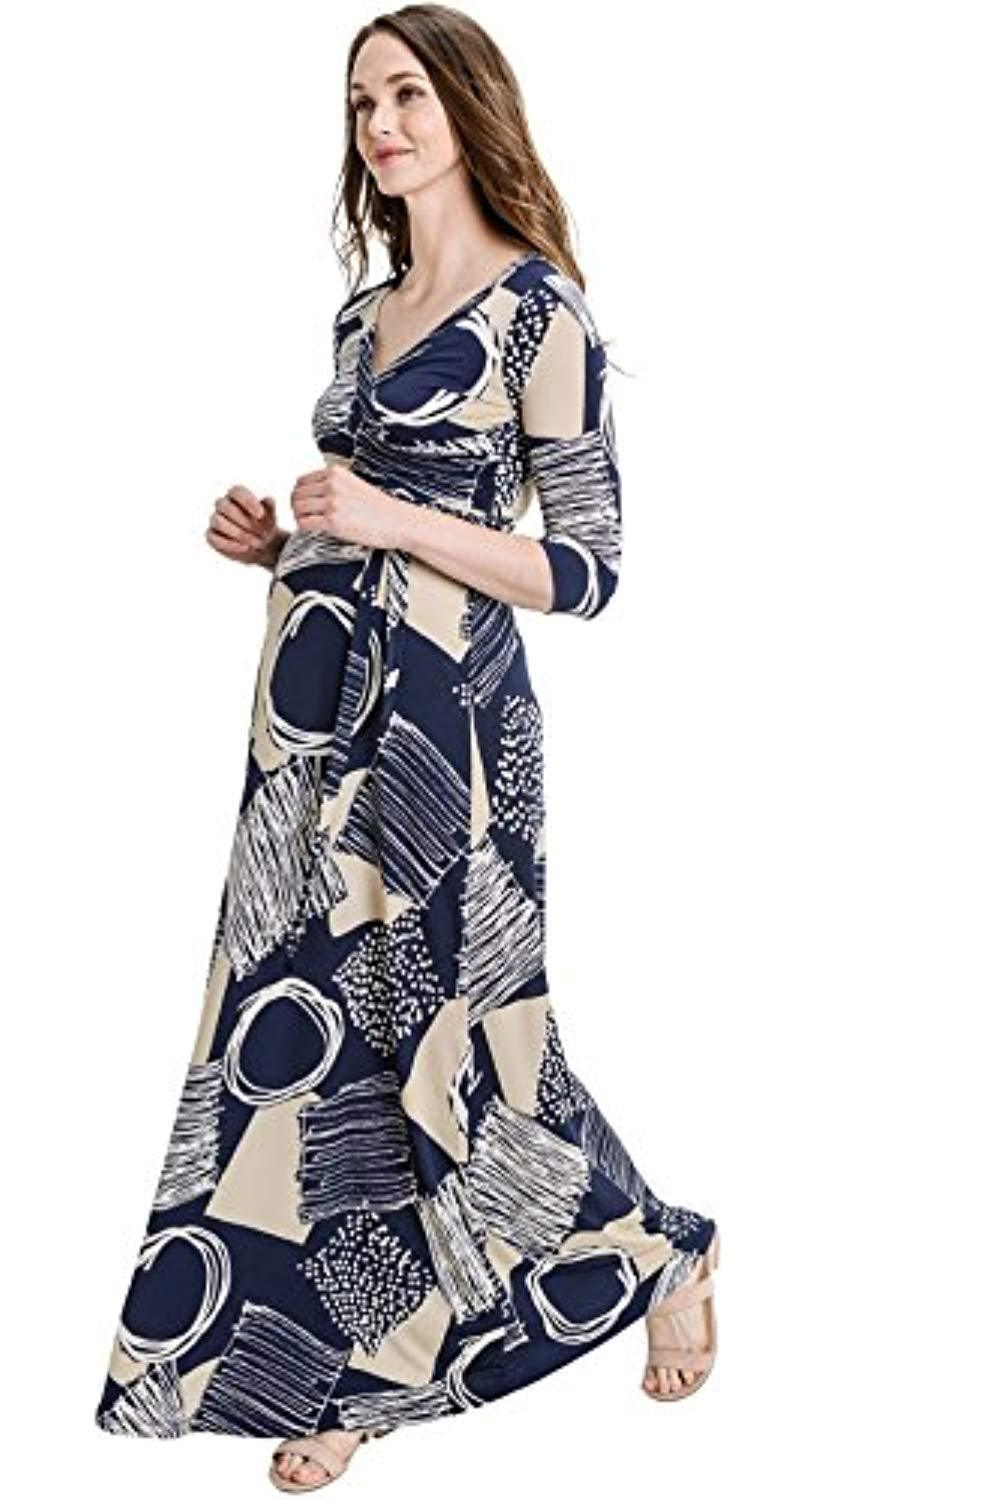 Abstract Maternity Dress with Belt - Mommylicious